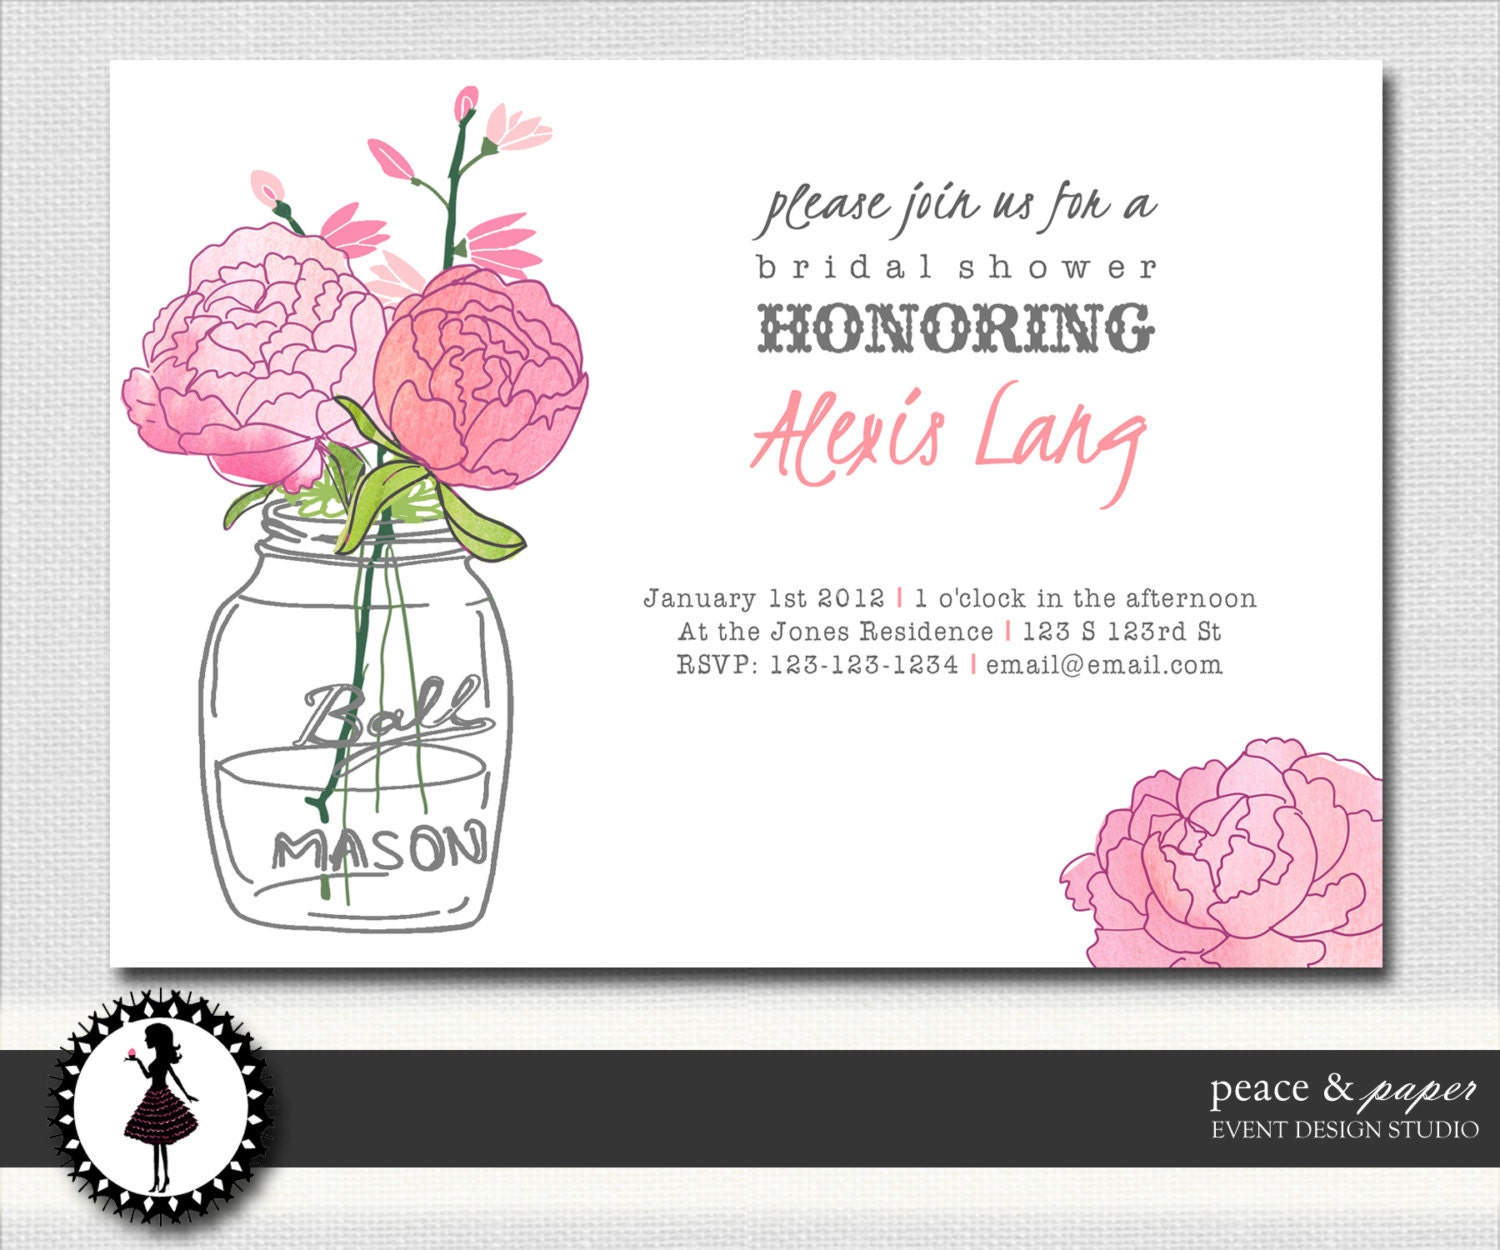 Bridal Shower Invitations - Invites - Mason Jar - Rustic - Flowers ...